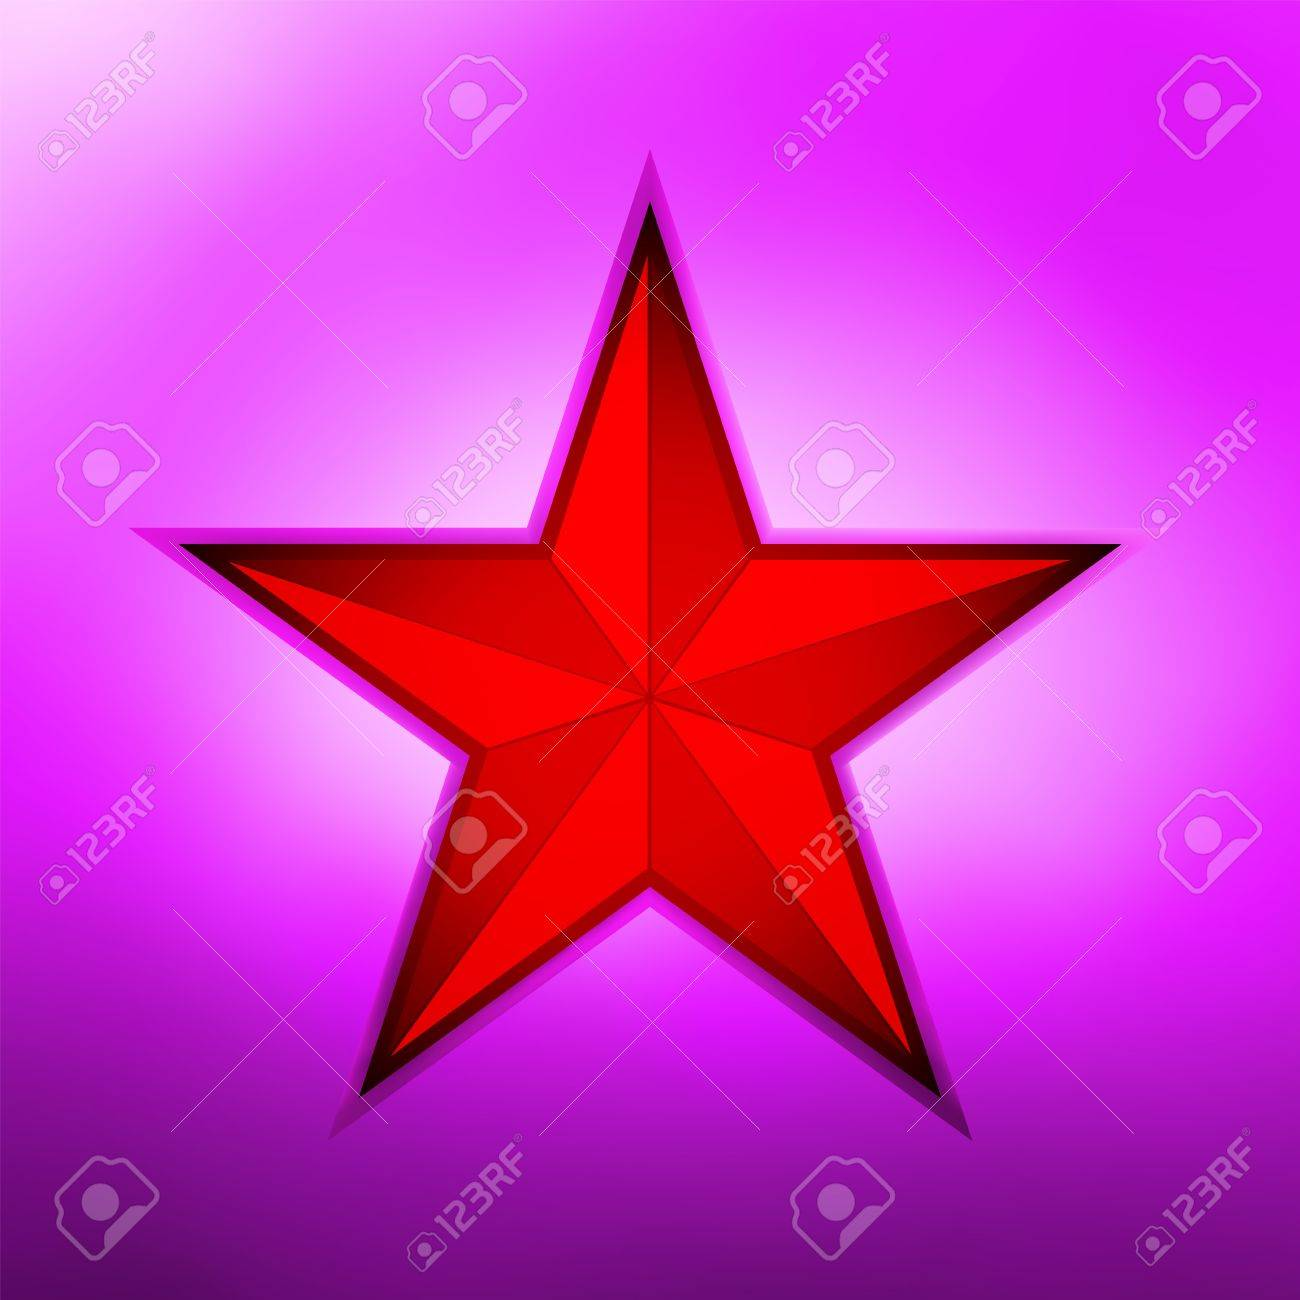 Red metallic star on a purple metallic background file included Stock Vector - 14282768